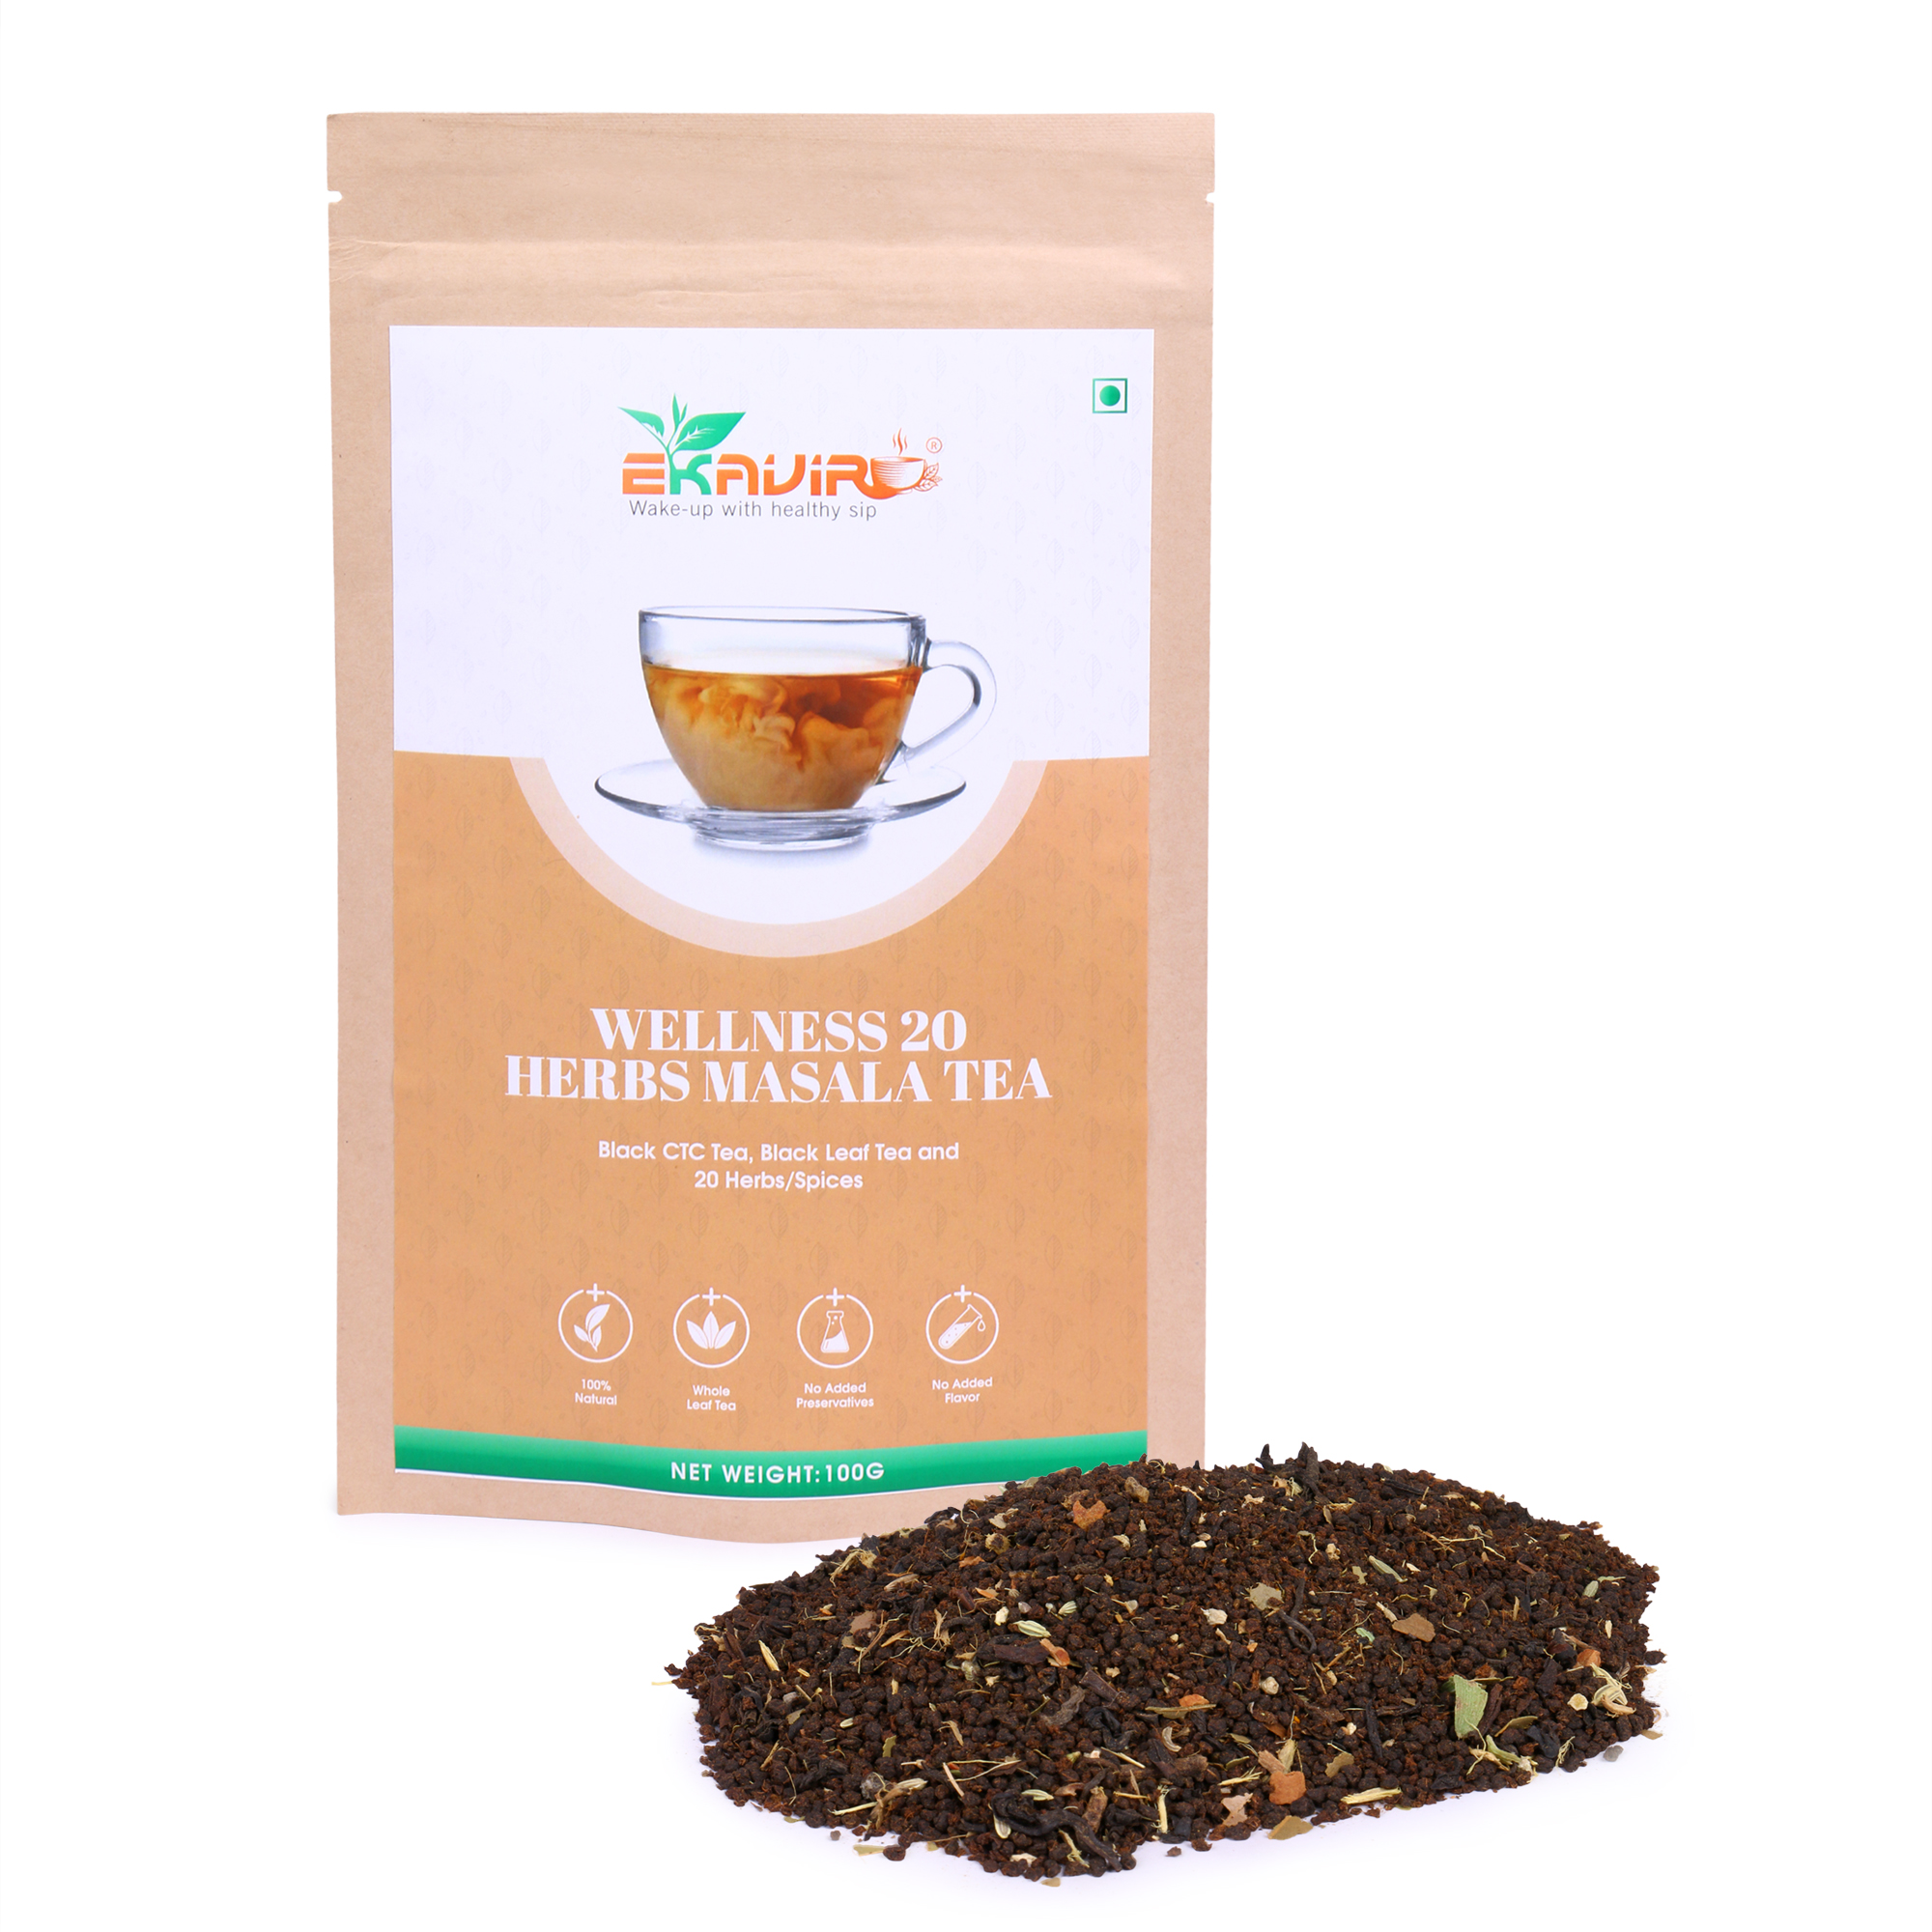 Natural Herbs Masala Green Tea with Ginger, Black Pepper, Ashwagandha Boosts Immunity and Energy Levels.